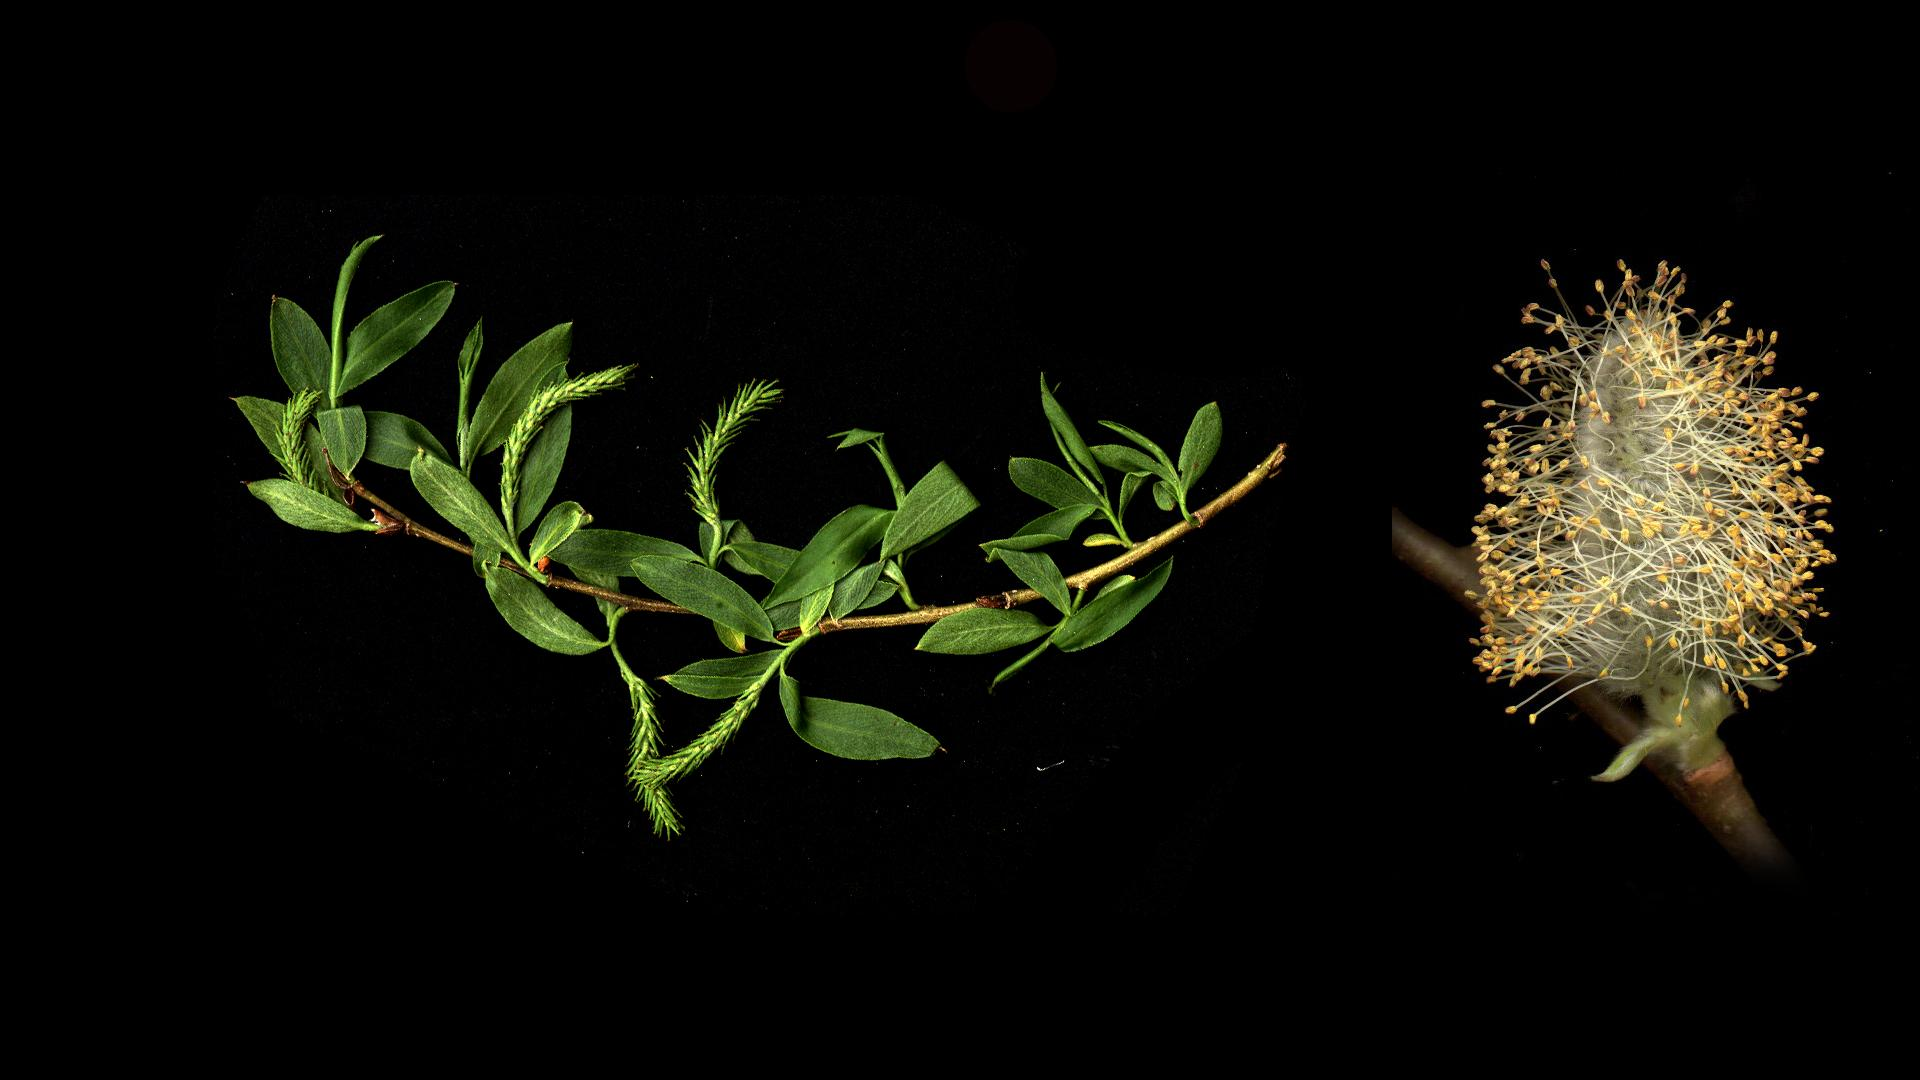 Salix - branch with female flowers and inset of male inflorescence